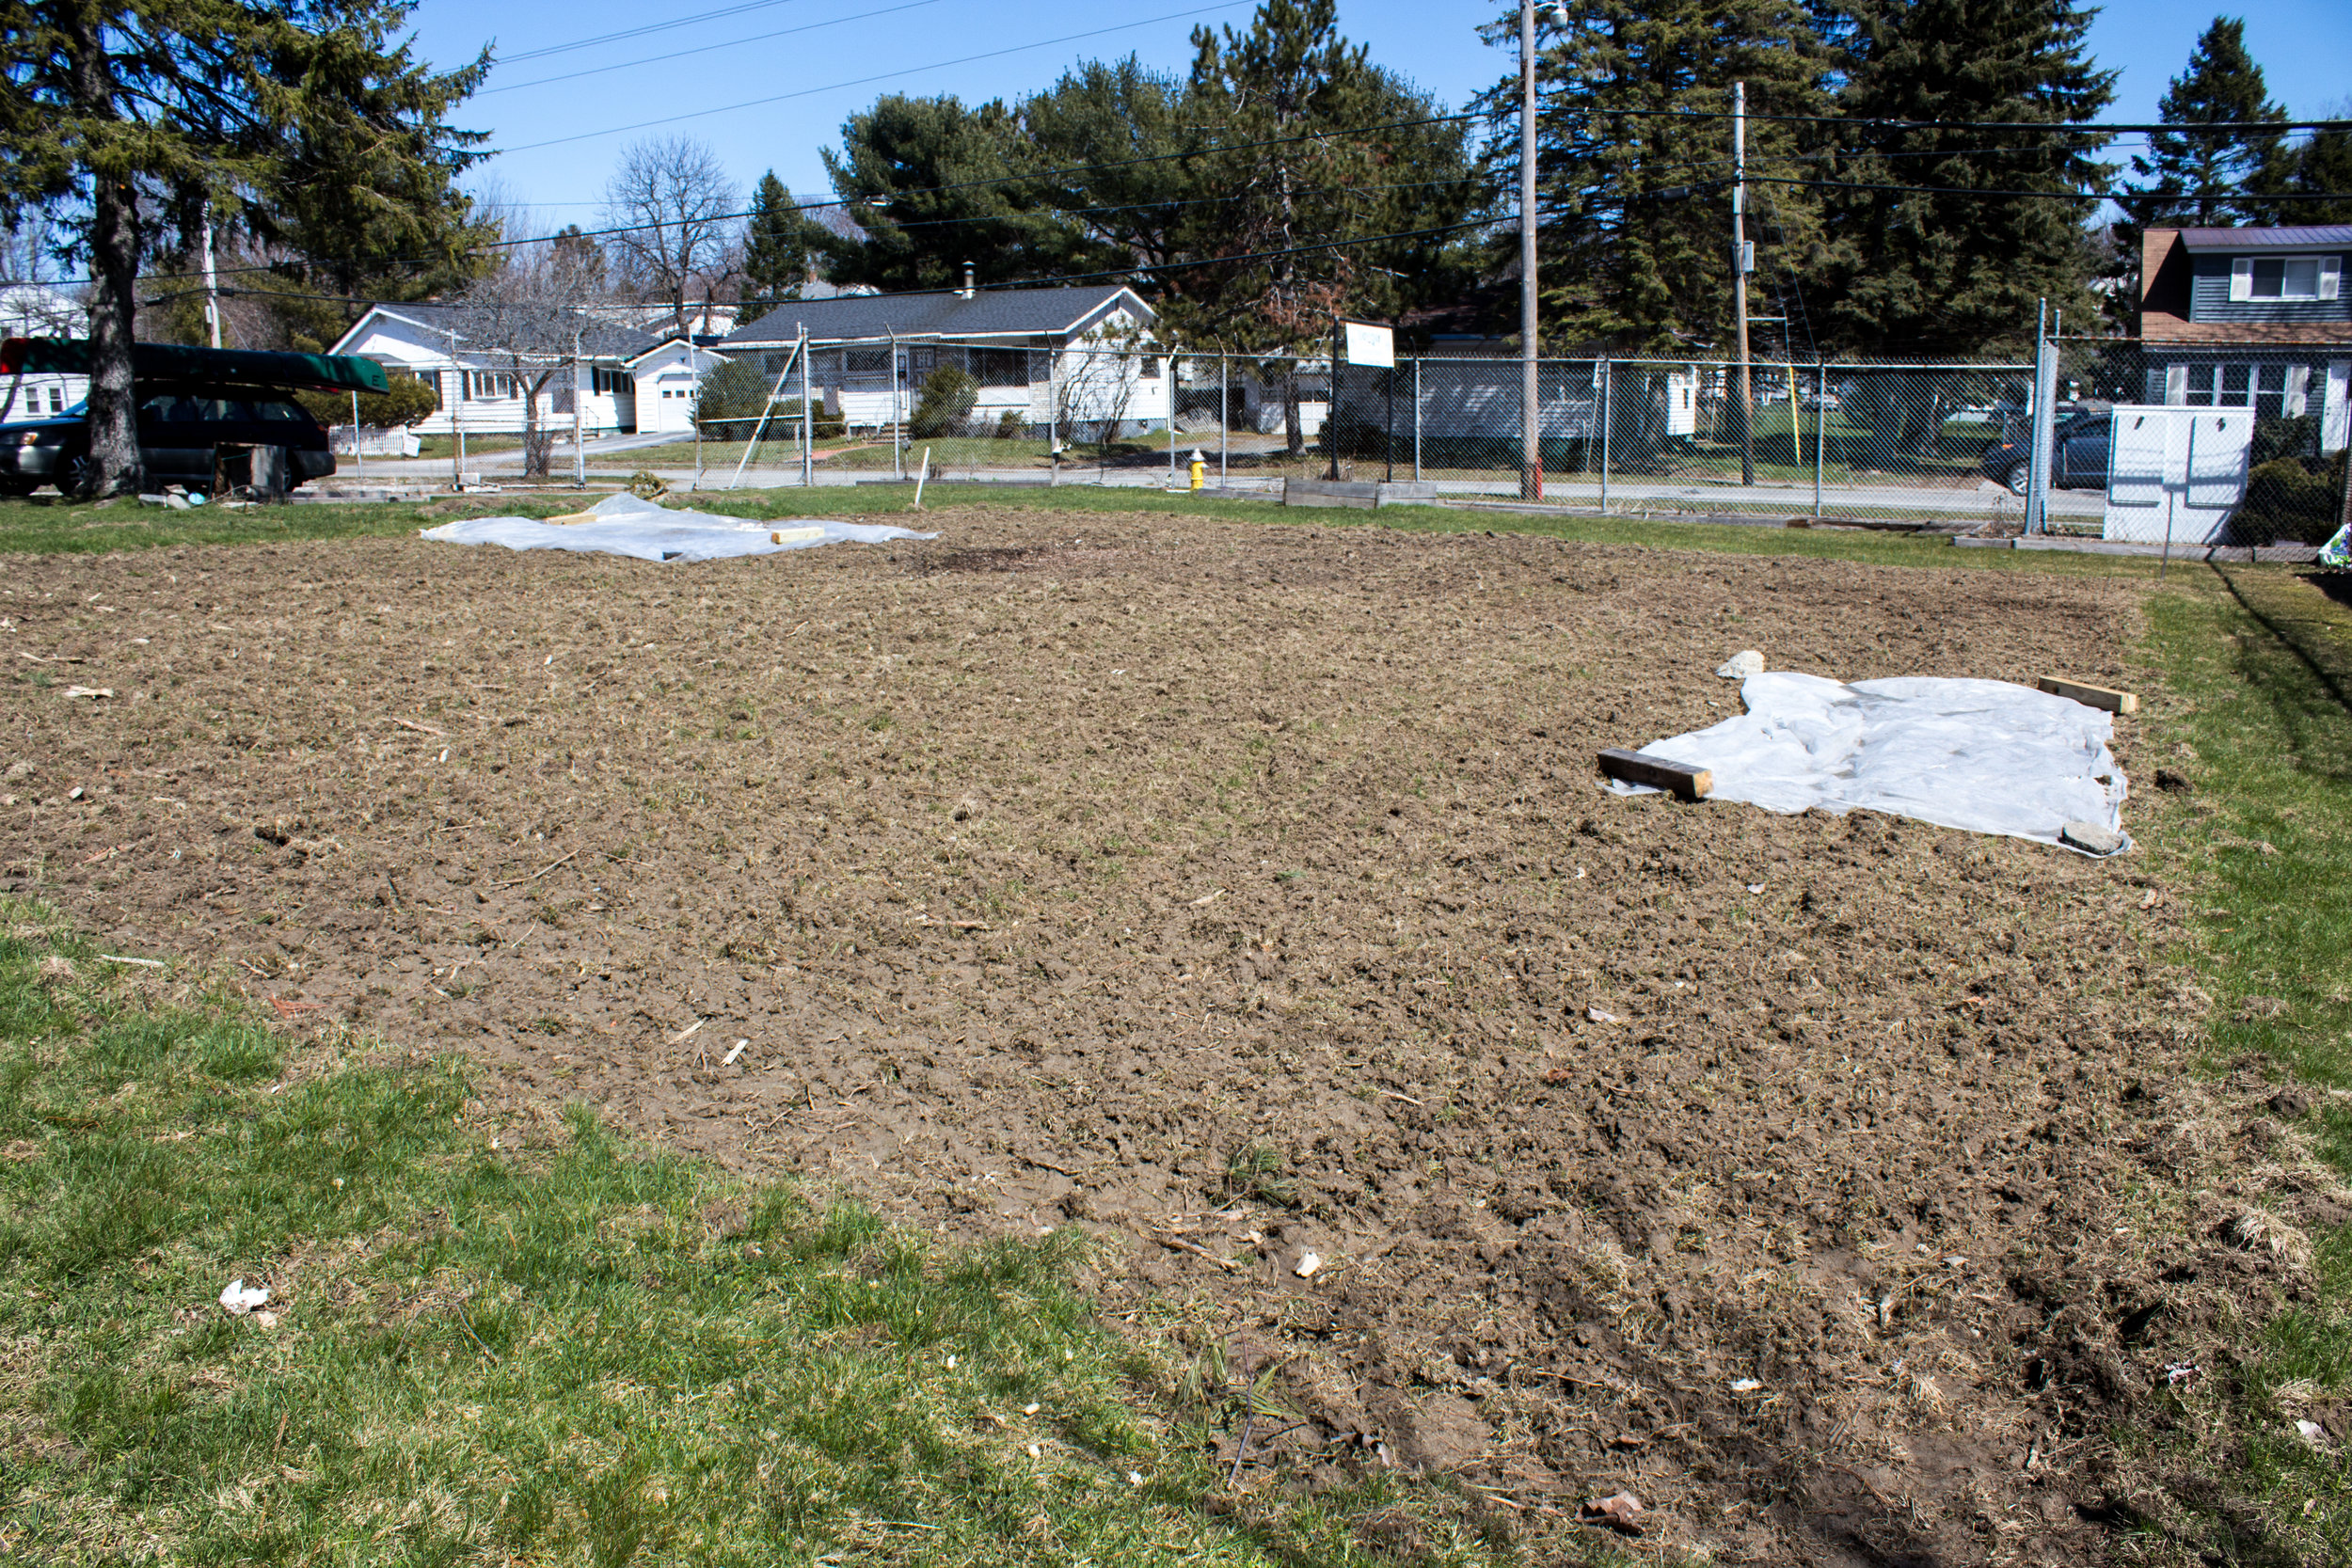 Warming up the soil with clear plastic at the Bangor Community Garden. Our patch is much bigger than last year which will allow us to grow two pumpkins, but we still need to add organic matter to build up the soil.